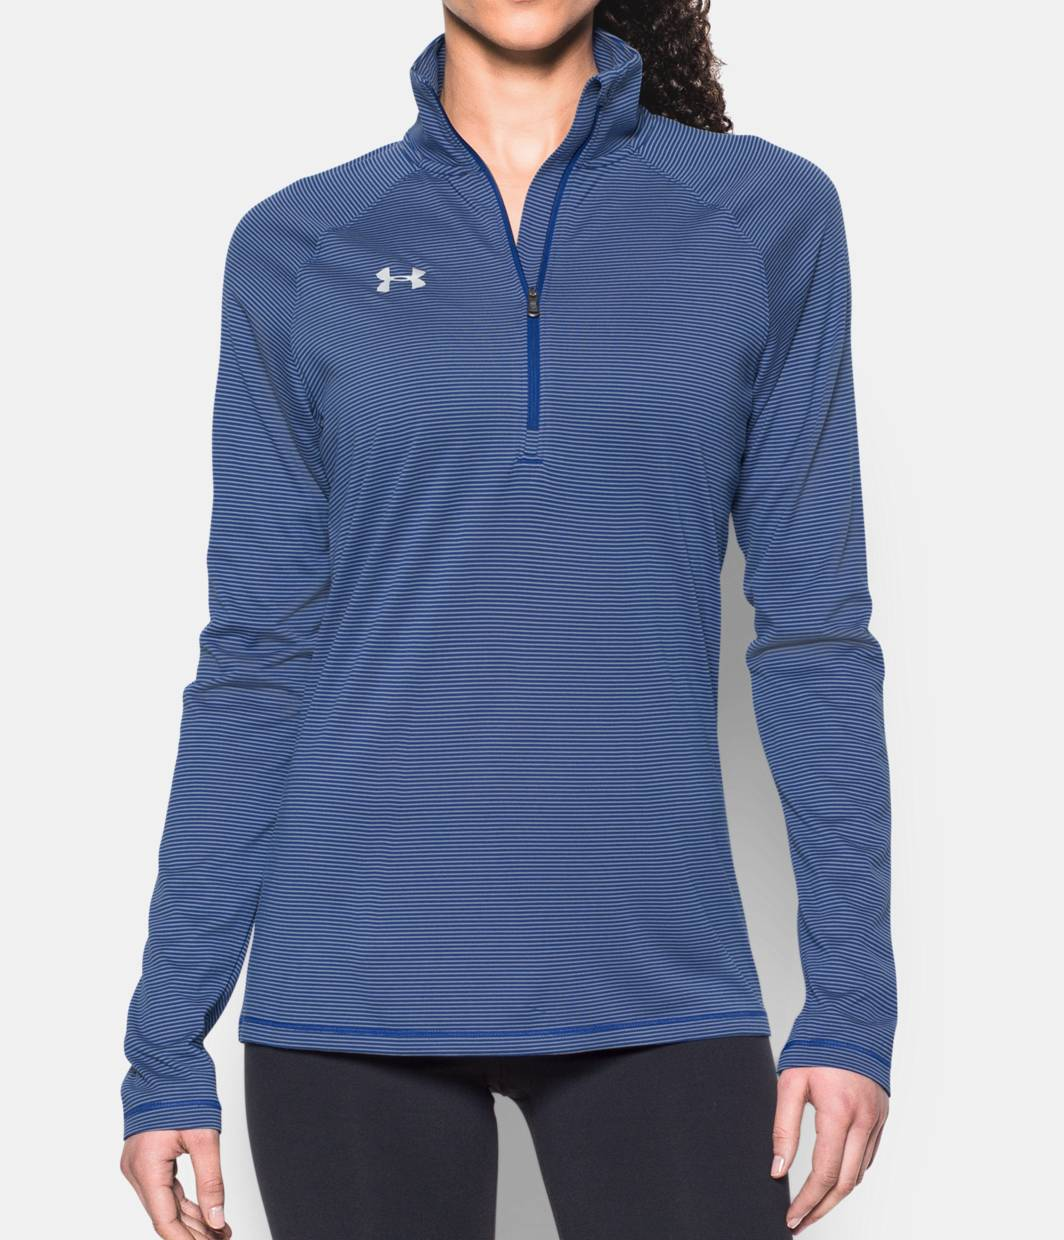 Women 39 S Ua Tech Microstripe 1 4 Zip Under Armour Us